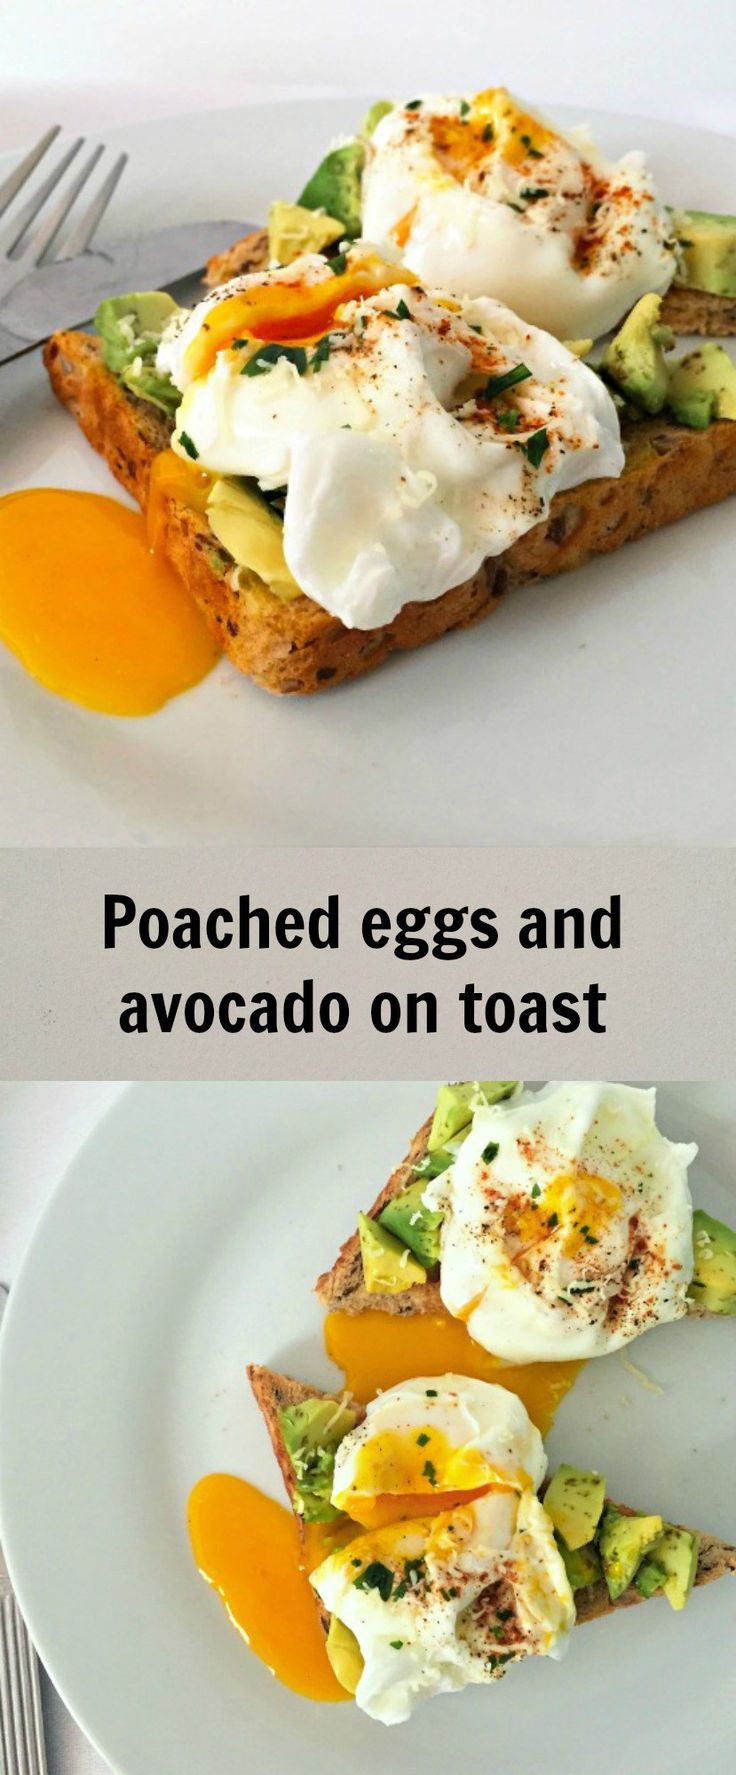 Poached eggs and avocado on toast, a healthy way to start your day. A very nutritious breakfast that will give you plenty of energy.